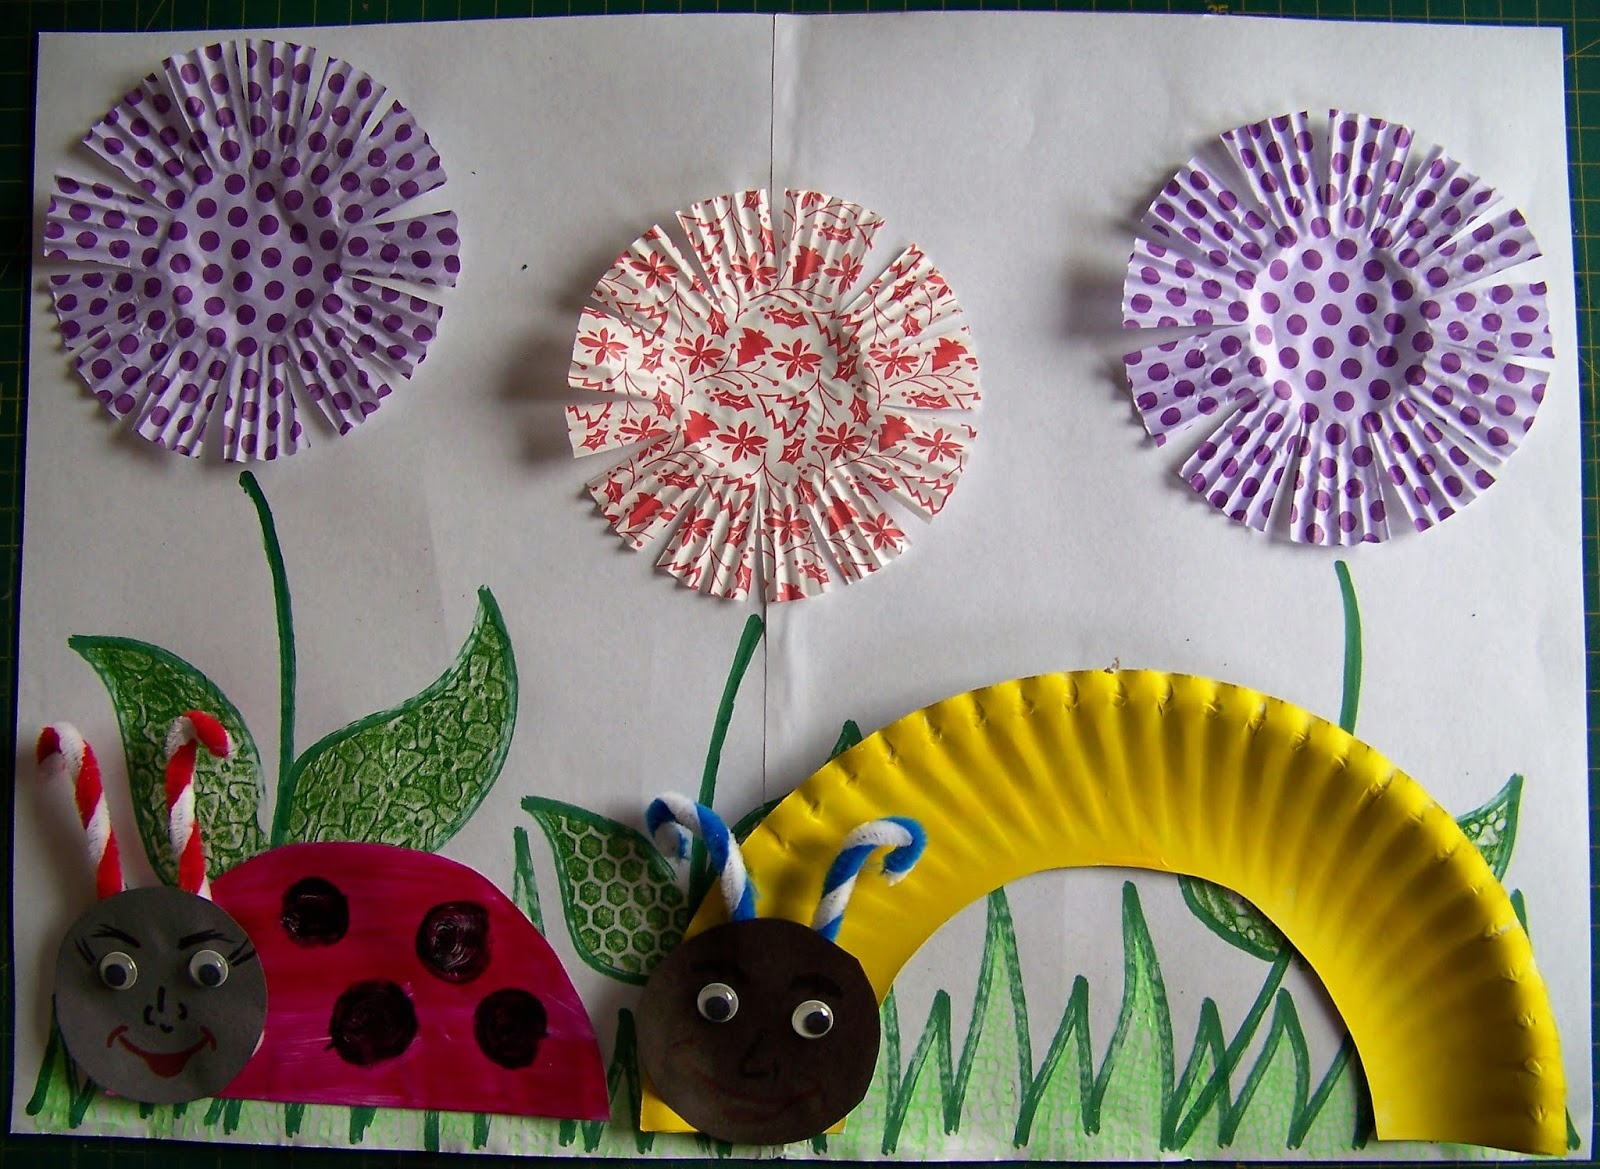 A Pretty Talent Blog: School Holiday Project 16: Making a Garden ...